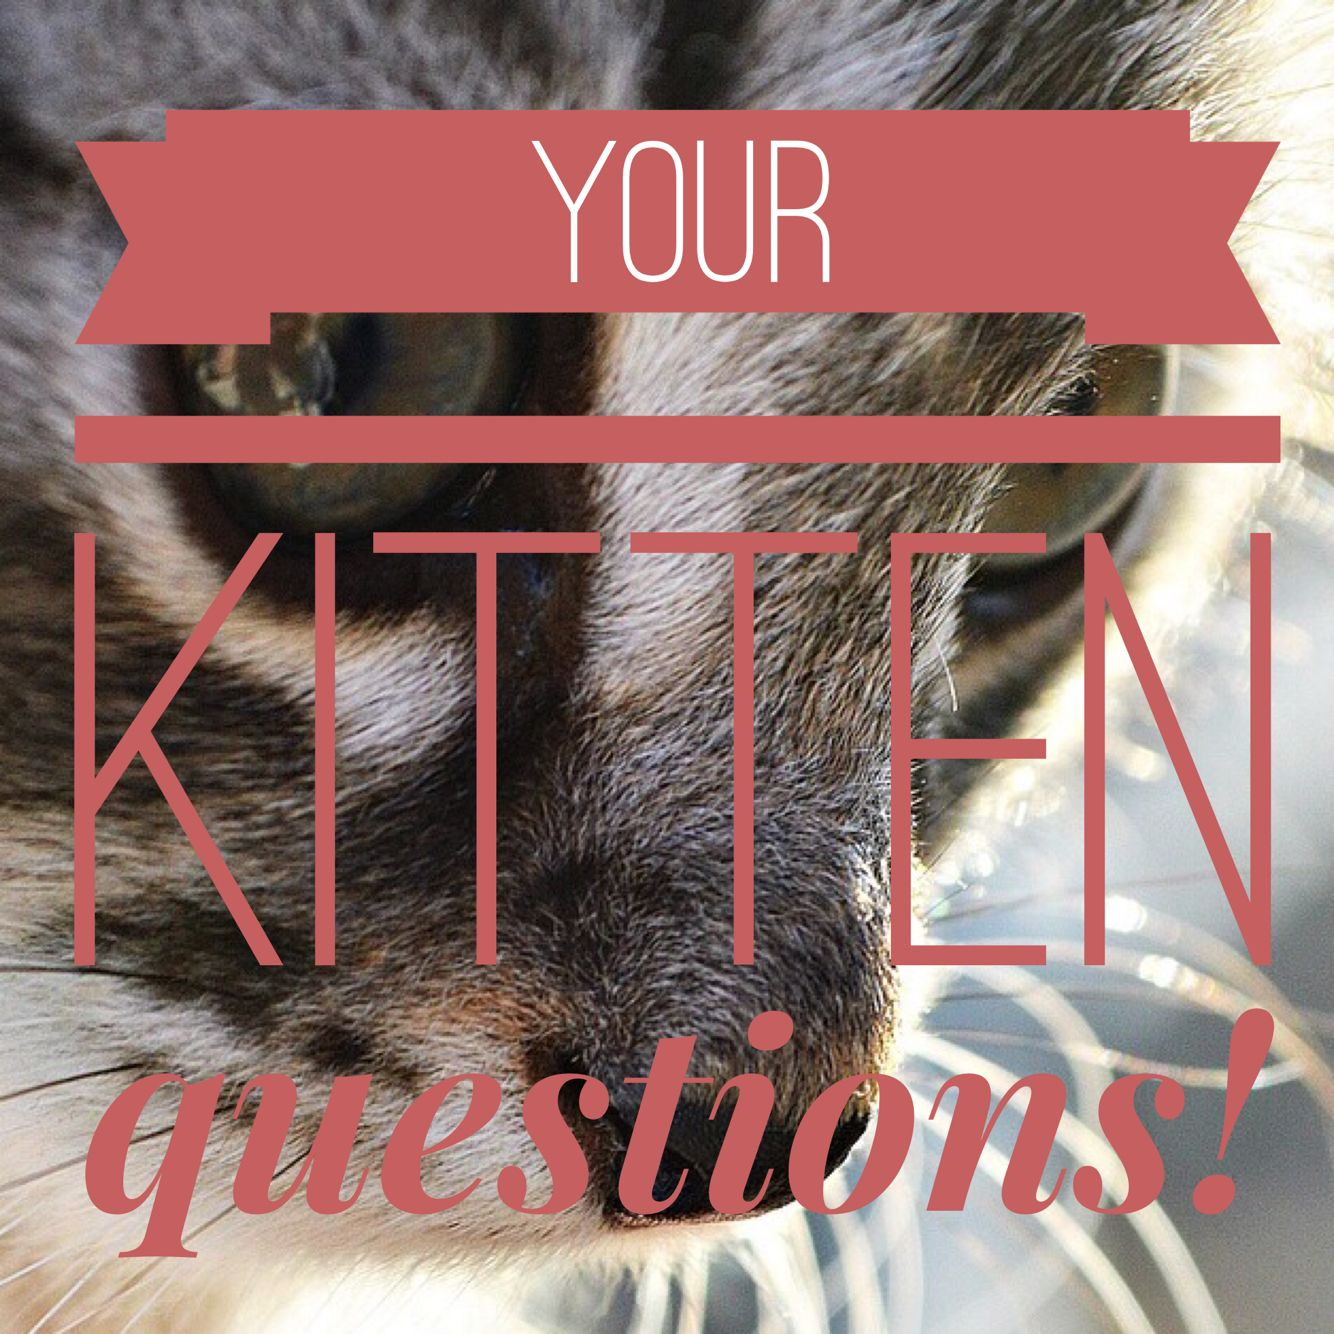 Feeding toileting training kittens and how to stop